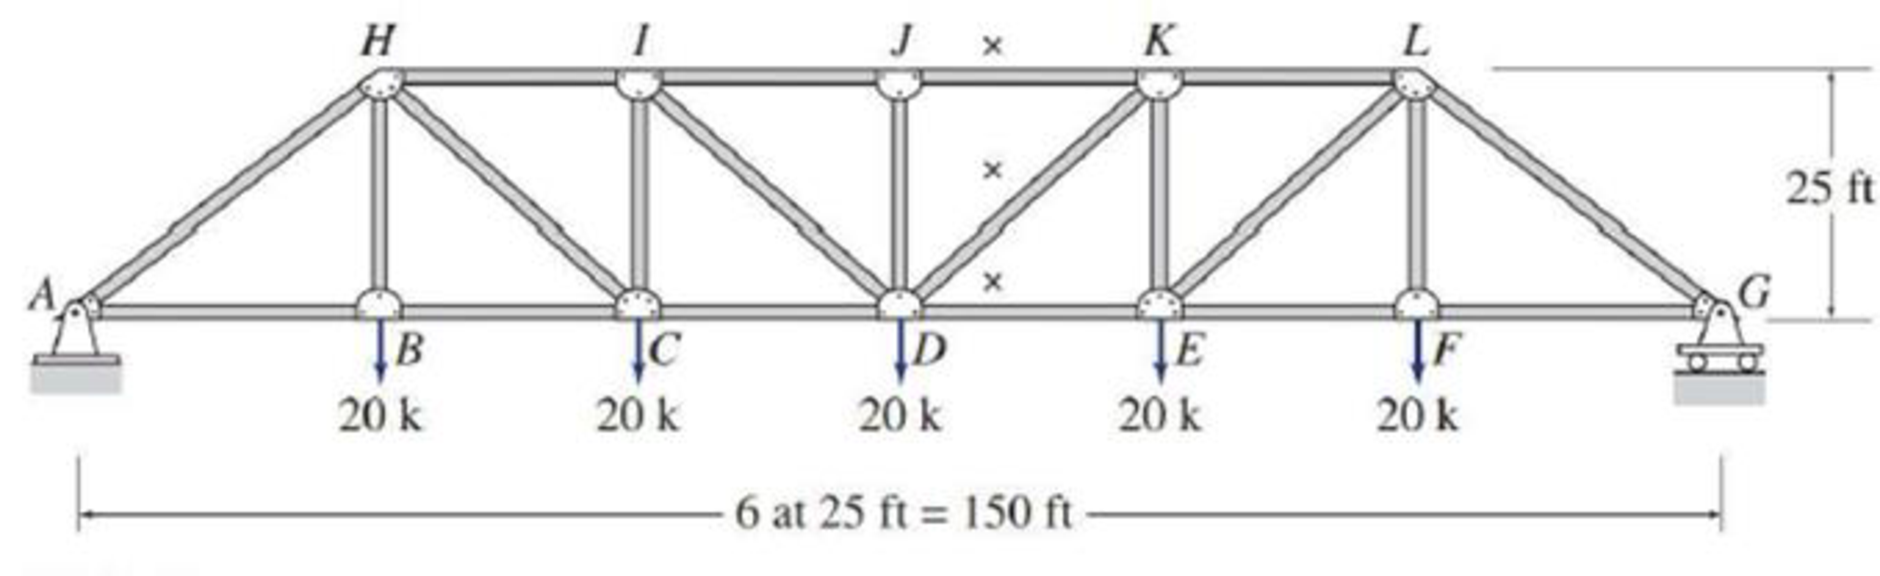 Chapter 4, Problem 33P, Determine the forces in the members identified by x of the truss shown by the method of sections.